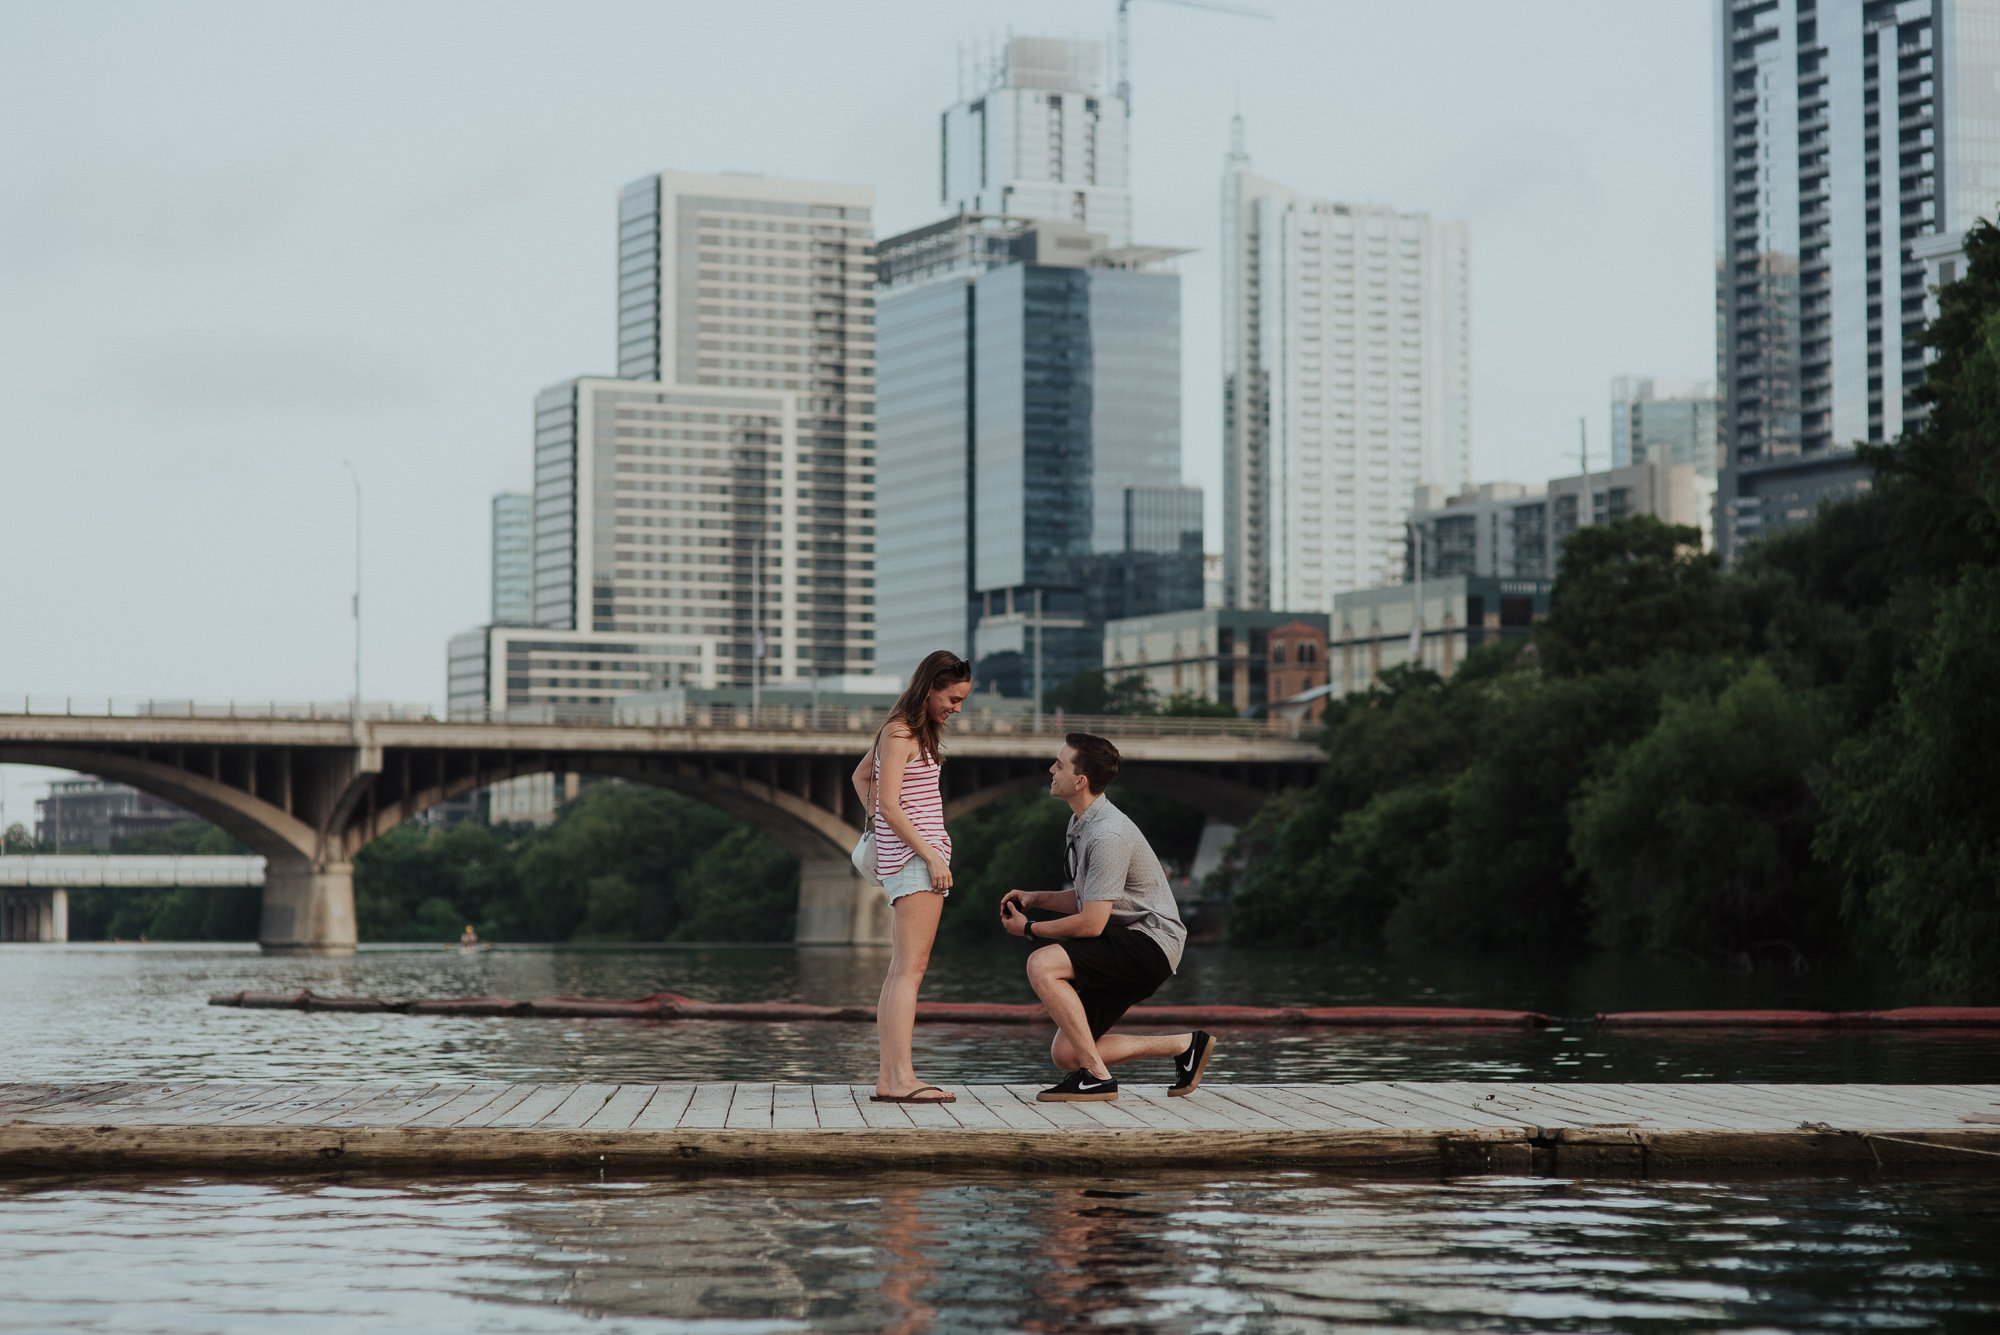 austin proposal photography on town lake, downtown austin proposal on the water, town lake proposal, austin proposal photographer, proposal photography in austin texas